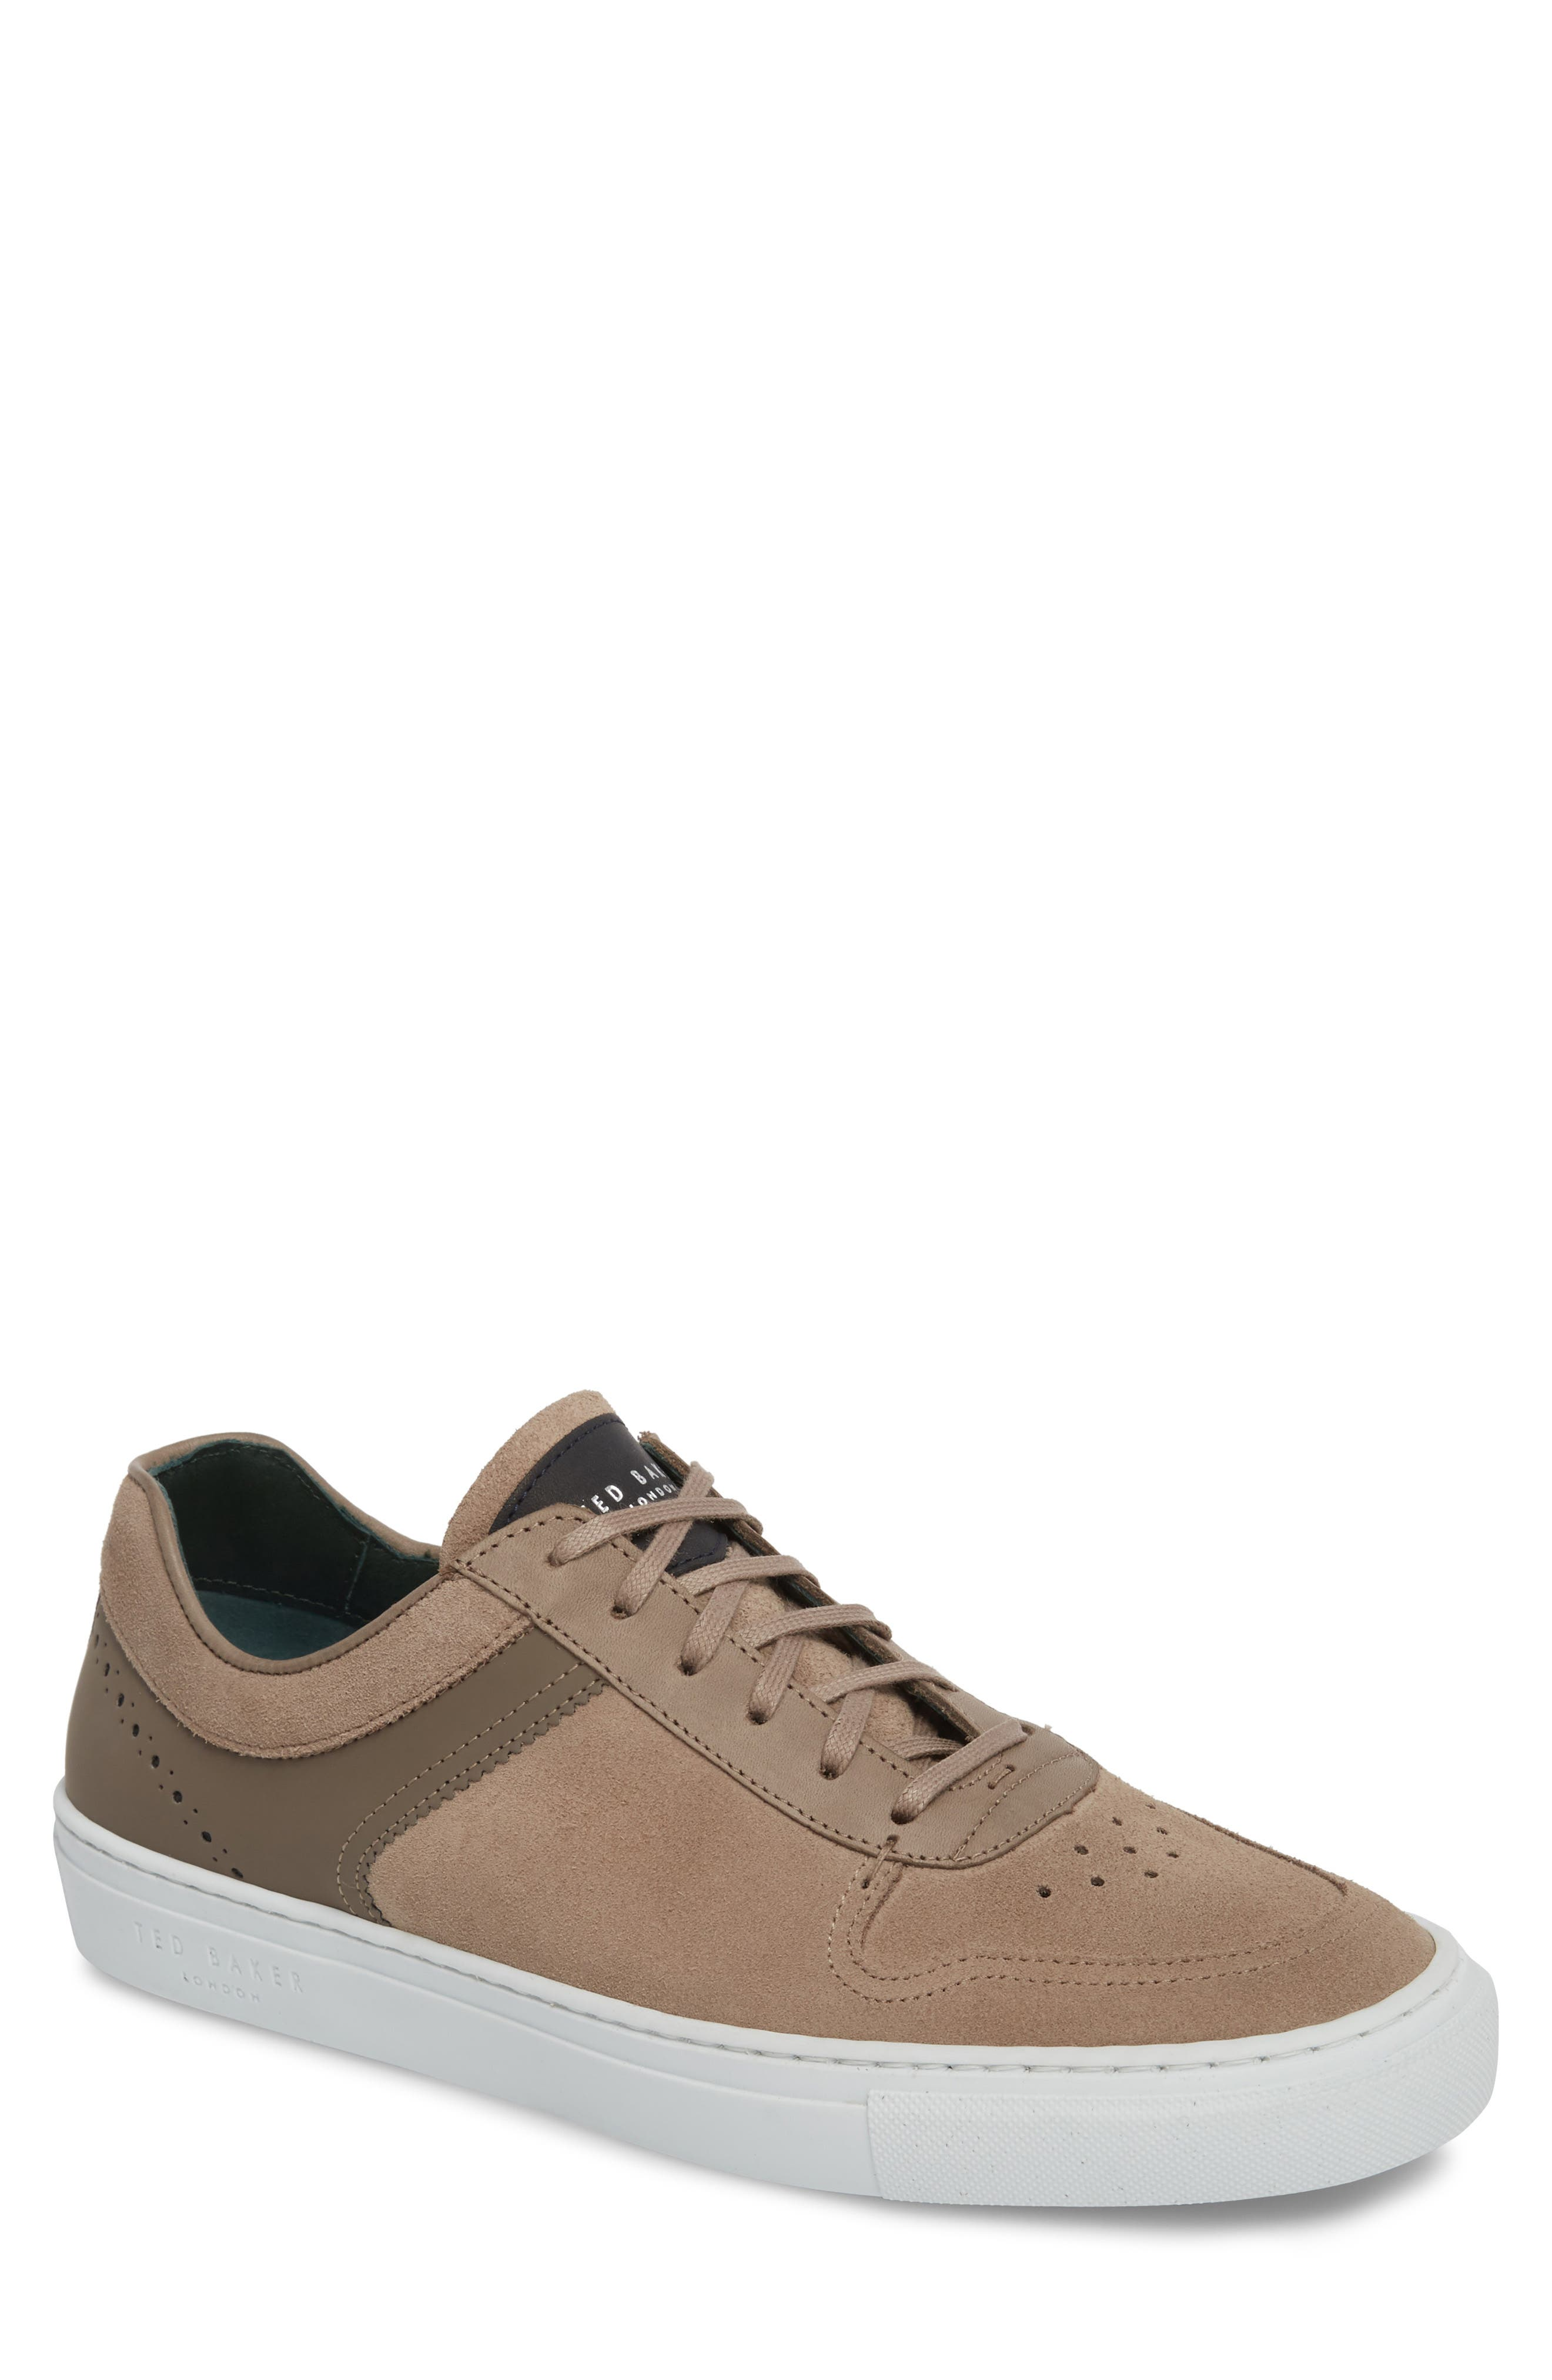 Burall Sneaker,                         Main,                         color, GREY SUEDE/ TEXTILE